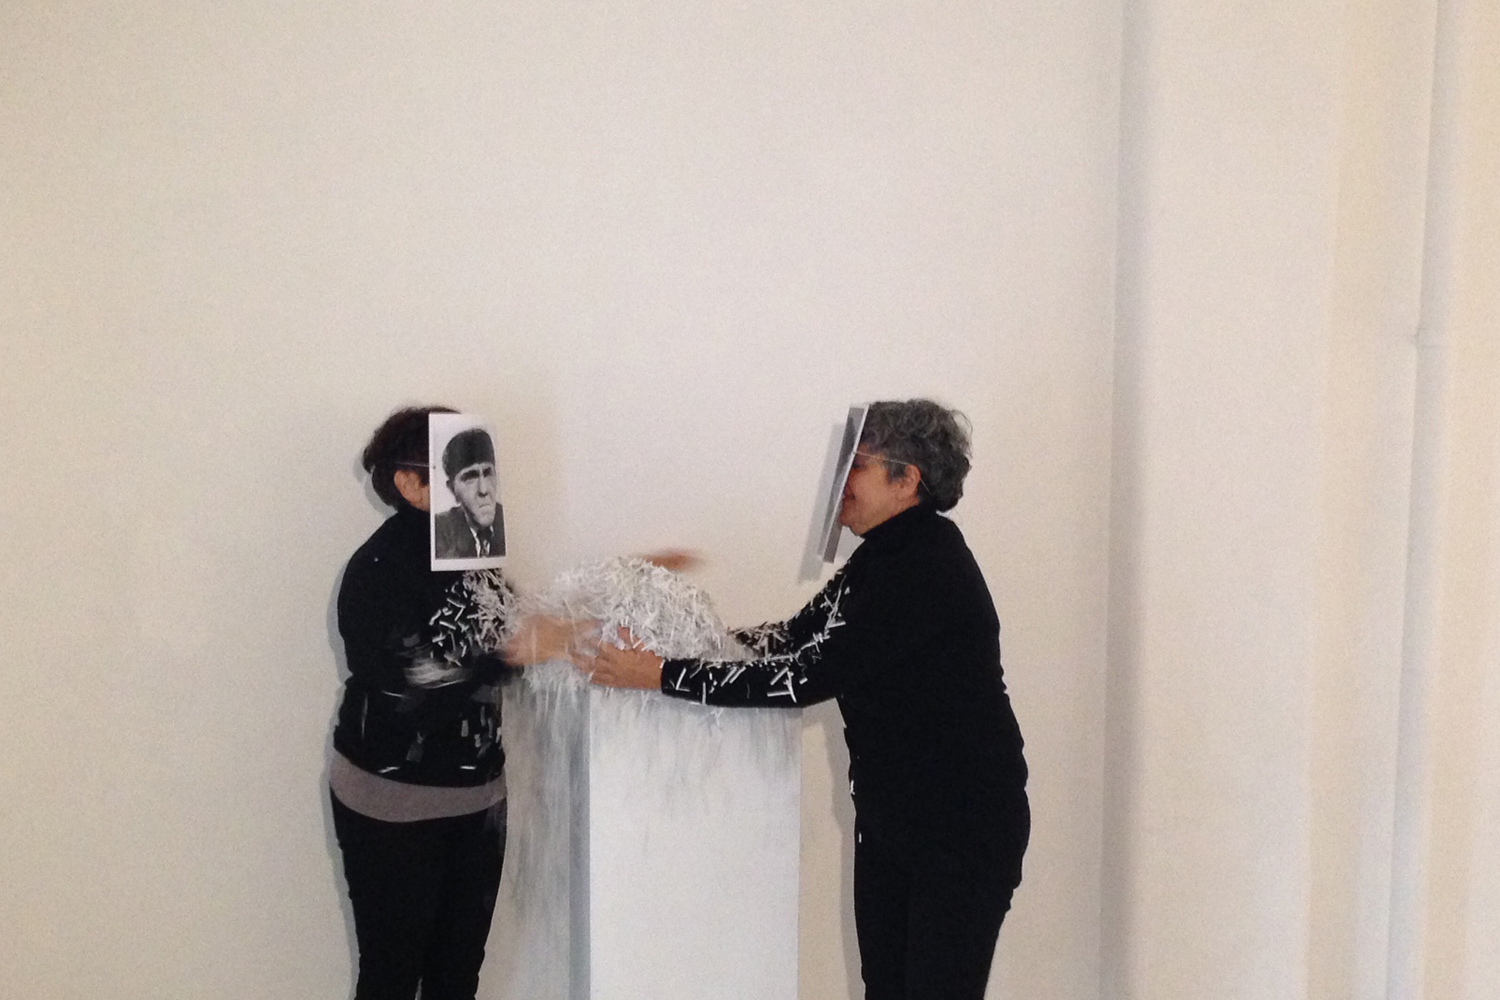 Maria Miranda and Norie Neumark (Out-of-Sync) | I Can Hardly Wait-Stuplimity and the Aesthetics of Neo-Liberalism, 2016. Performance view at BLINDSIDE